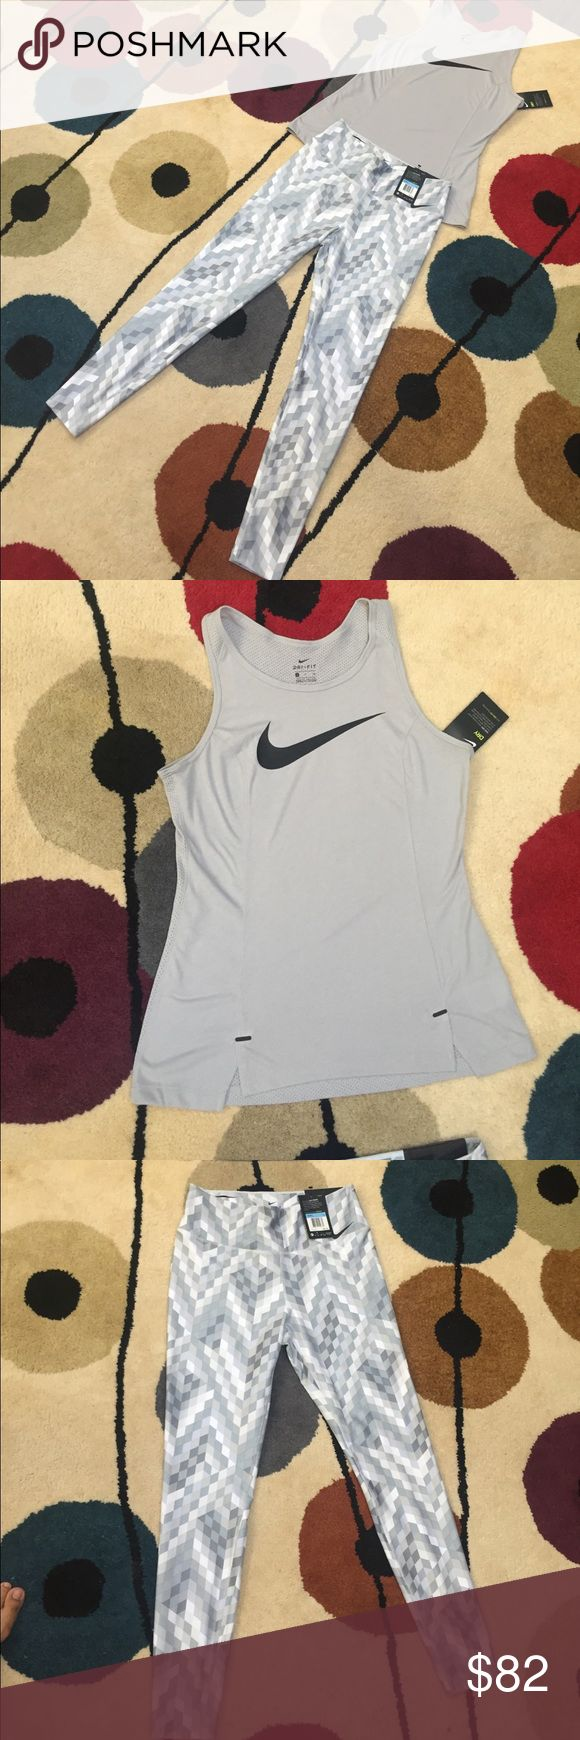 NWT NIKE TANK & TIGHTS SET Nike FIT SET BRAND NEW WTO!!  MRP: $115  Grey Tank  (MRP: $35) - SMALL Grey / White Tights(MRP: $80)  - MEDIUM  Price is firm !! NO TRADES  Very comfy and great for gym wear !!  Items not sold separately!! Nike Pants Leggings